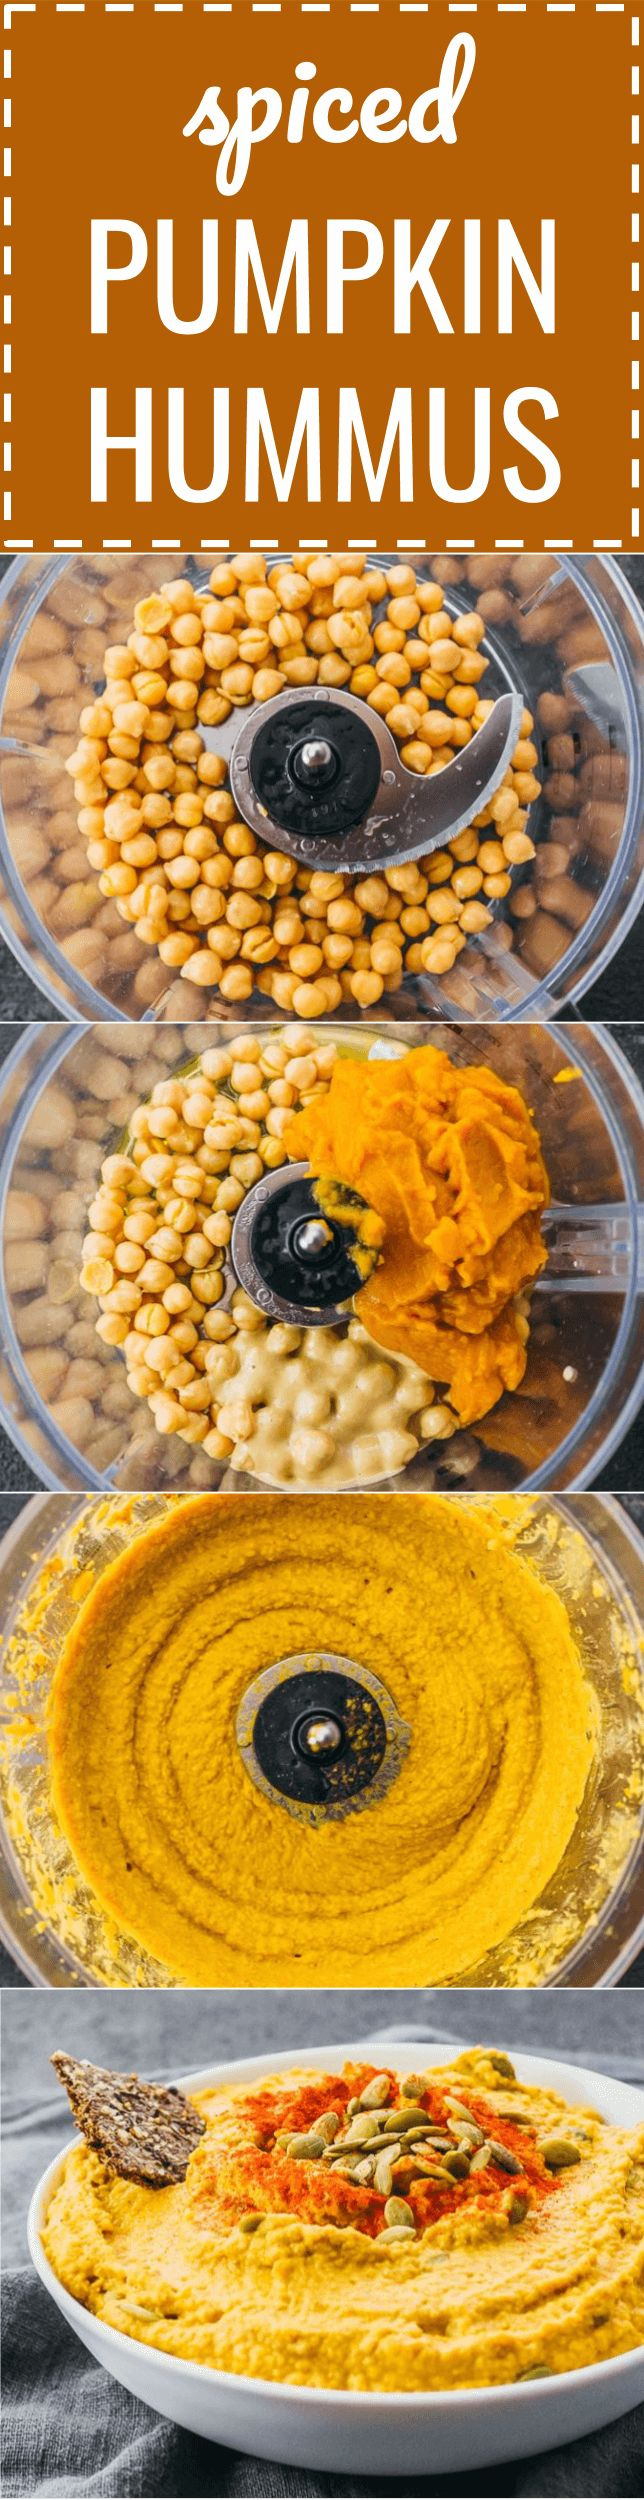 Spiced pumpkin hummus dip with tahini / thanksgiving / spicy / how to make / cinnamon / recipe / sweet / appetizers / savory / vegan / olive oils / fall / food / homemade / mediterranean / keto / low carb / diet / atkins / induction / meals / recipes / easy / dinner / lunch / foods / healthy / gluten free / paleo / ideas / what to eat / best / lemon / creamy / traditional #pumpkin #hummus #lowcarbrecipes via @savory_tooth